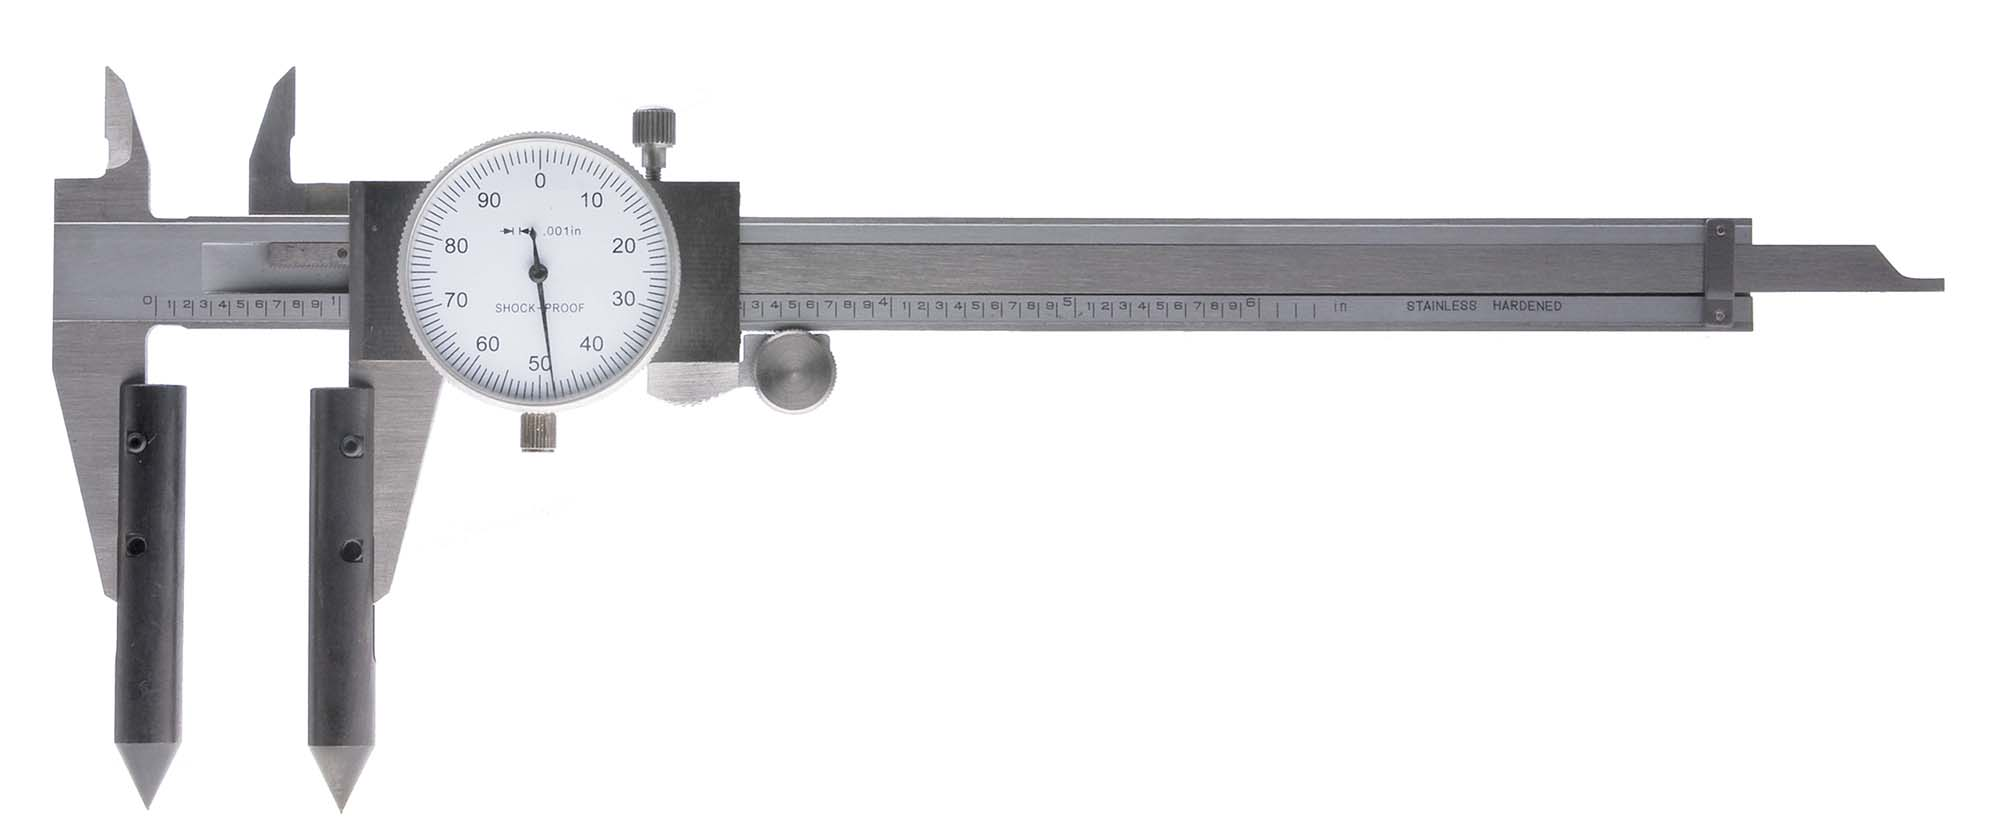 Accurate Mfg Z9009 Centerline Gage for 4-8 inch Calipers